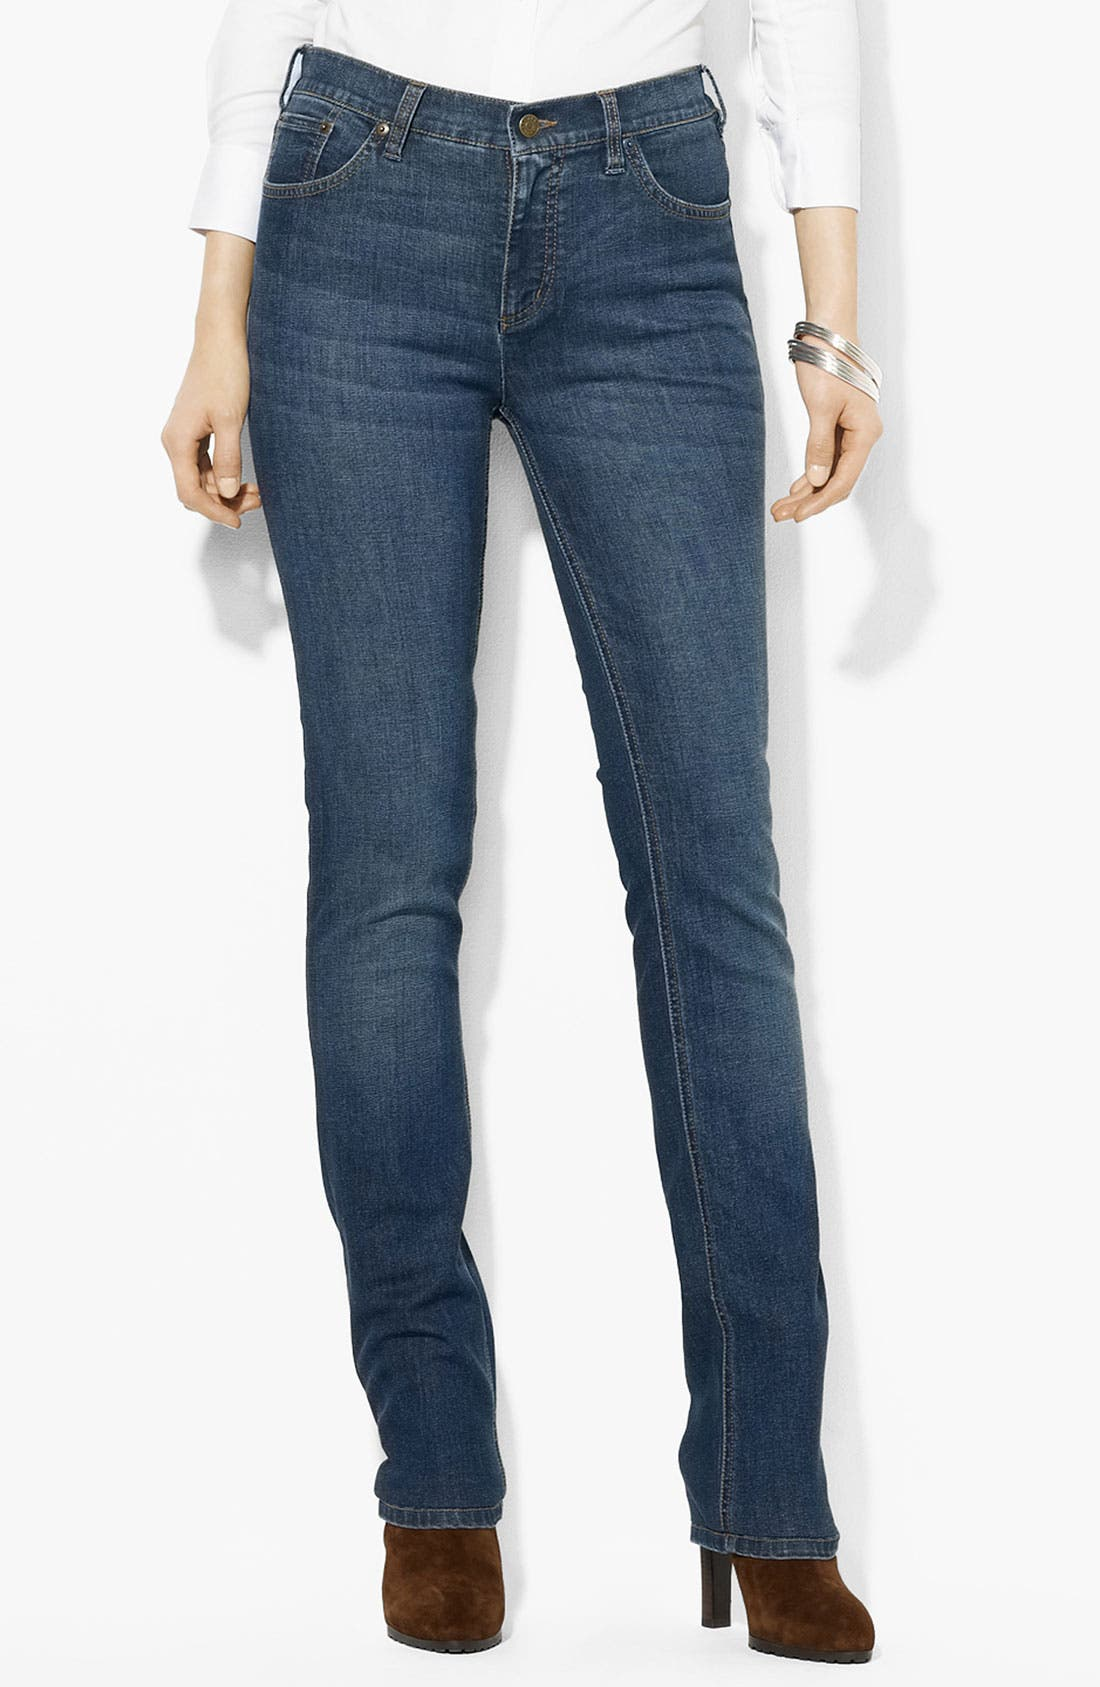 Alternate Image 1 Selected - Lauren Ralph Lauren Slimming Straight Leg Jeans (Petite) (Online Only)